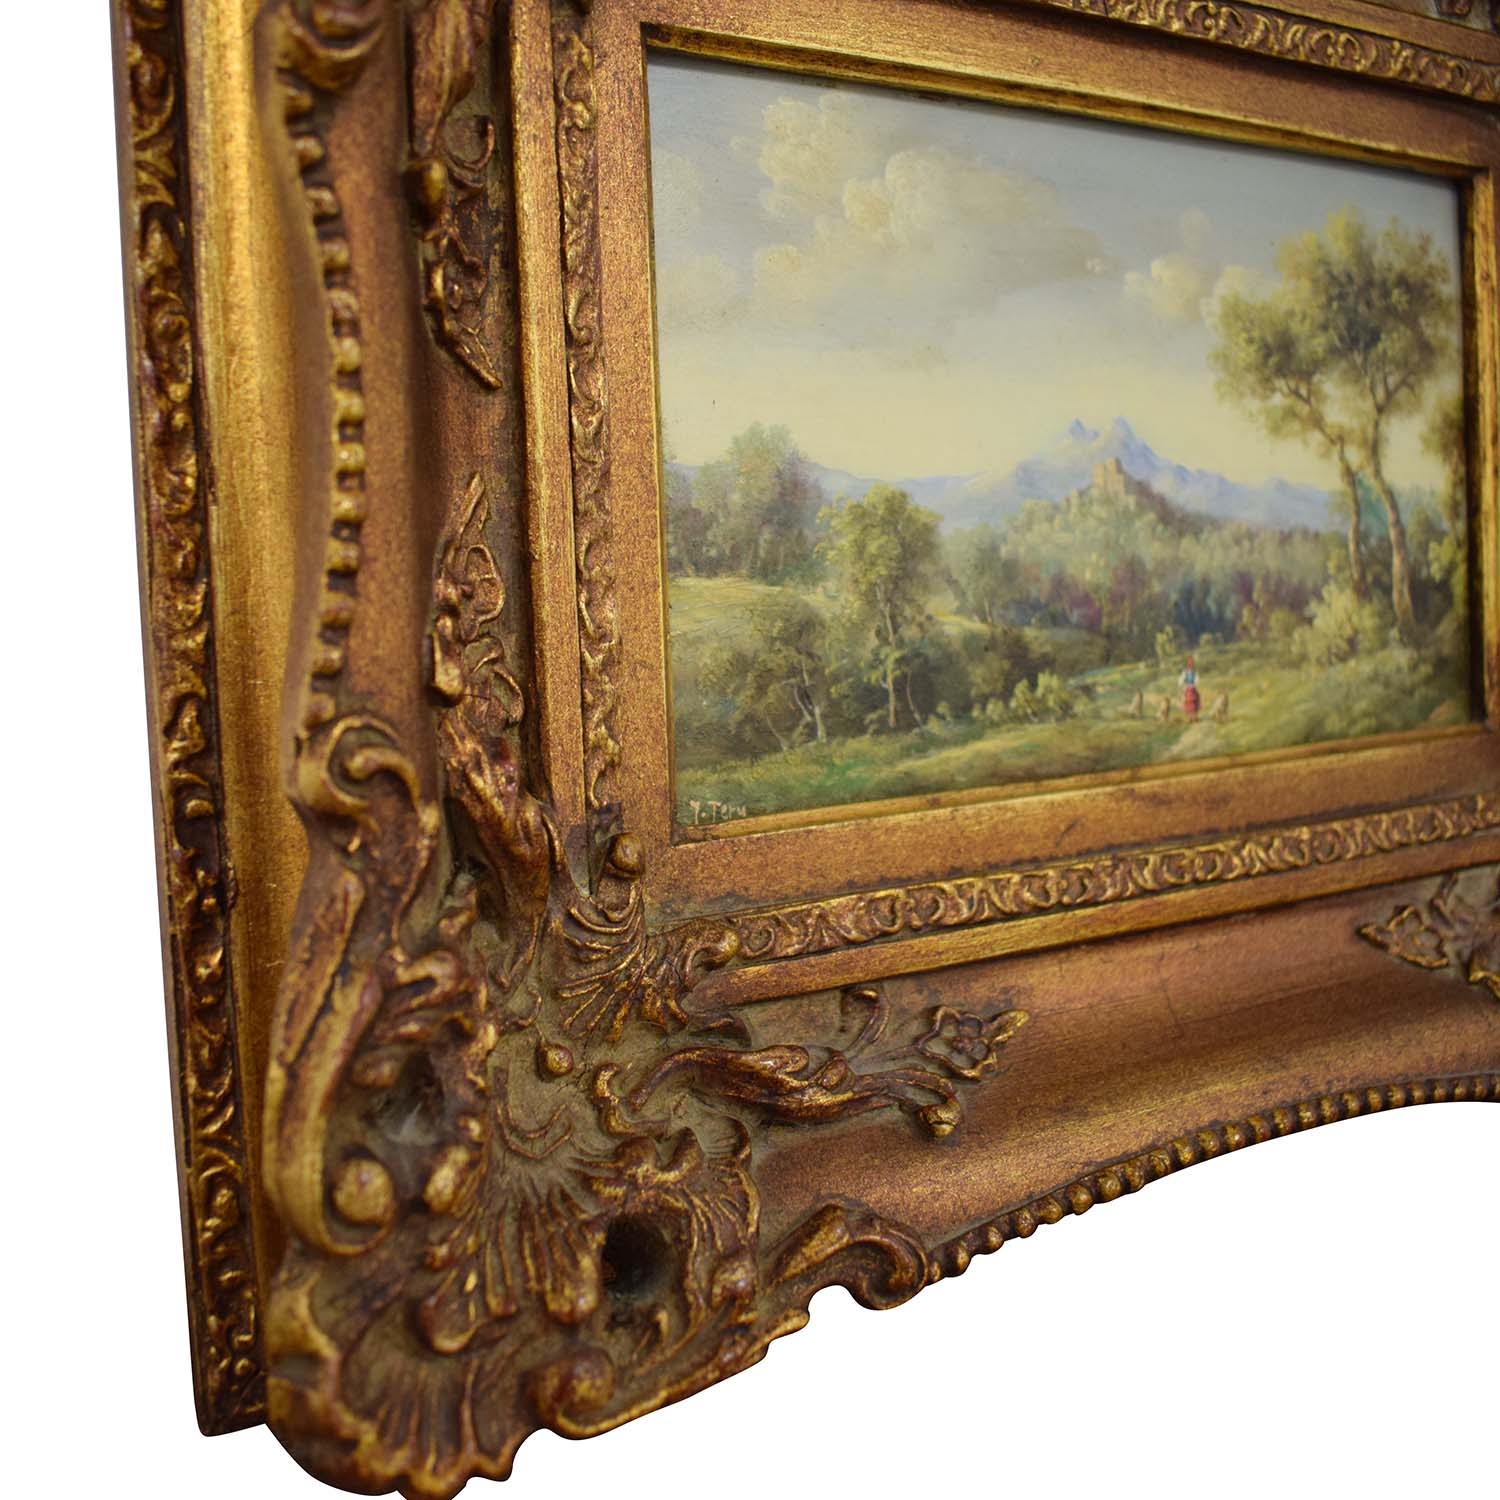 Framed Landscape Painting dimensions